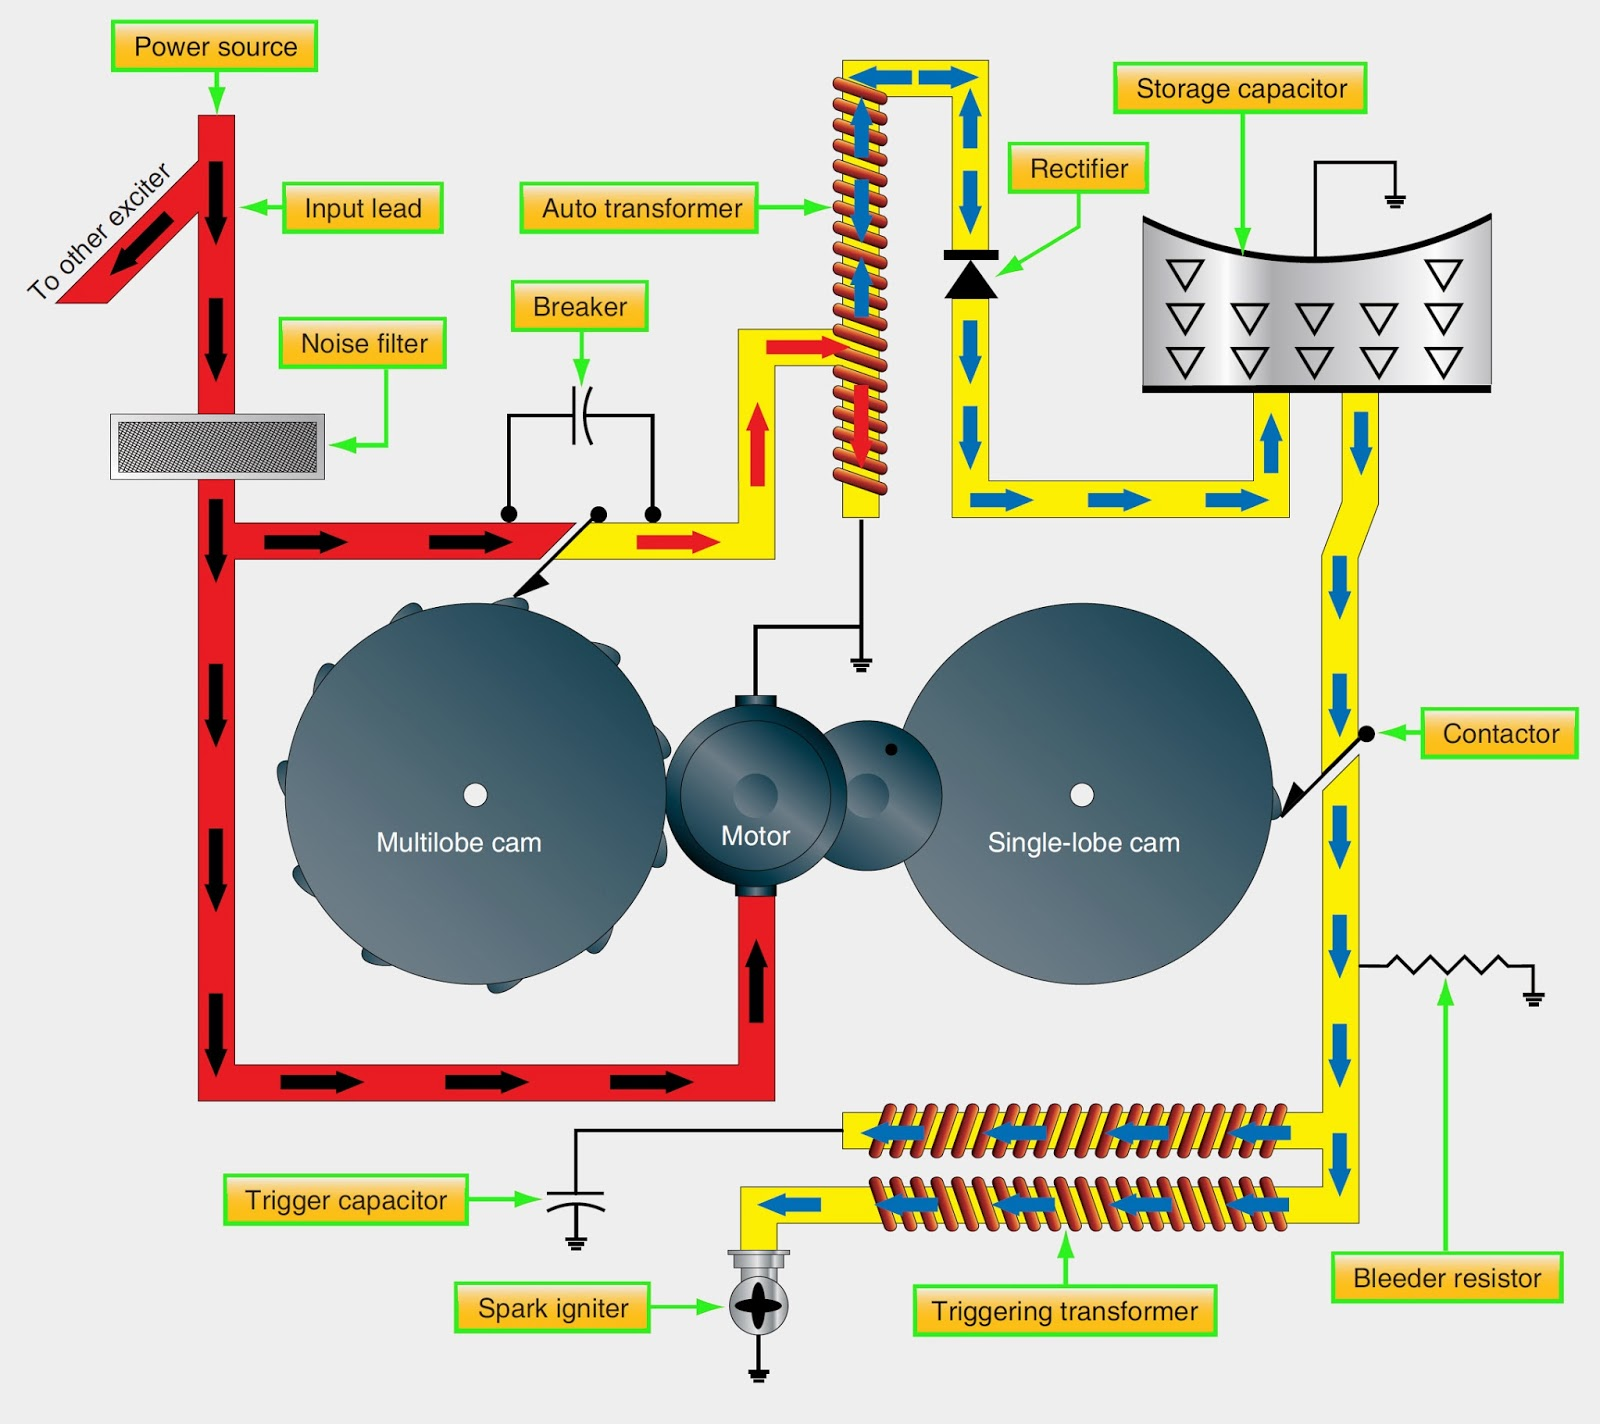 Turbo Jet Engine Schematic Turbojet Diagram Turbine Ignition Systems Figure Capacitor Type System 1600x1424